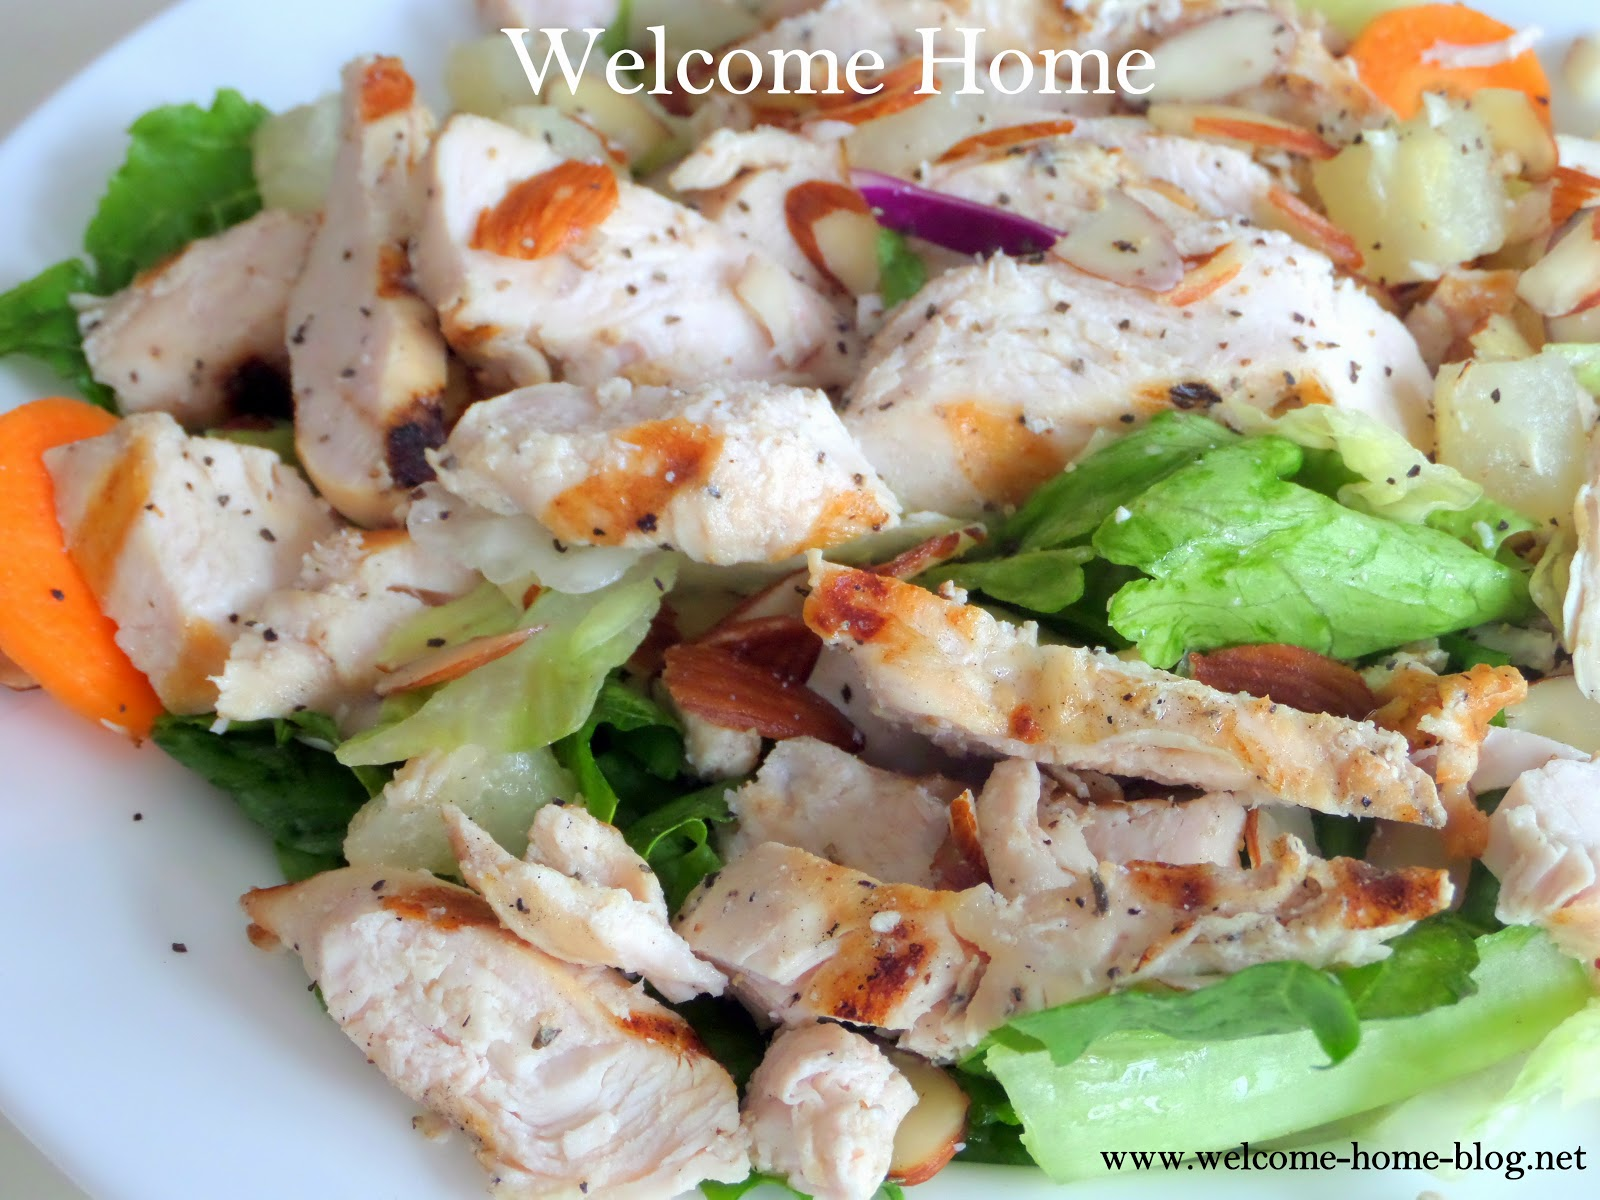 Welcome Home Blog: Grilled Chicken Salad with Pears and Almonds